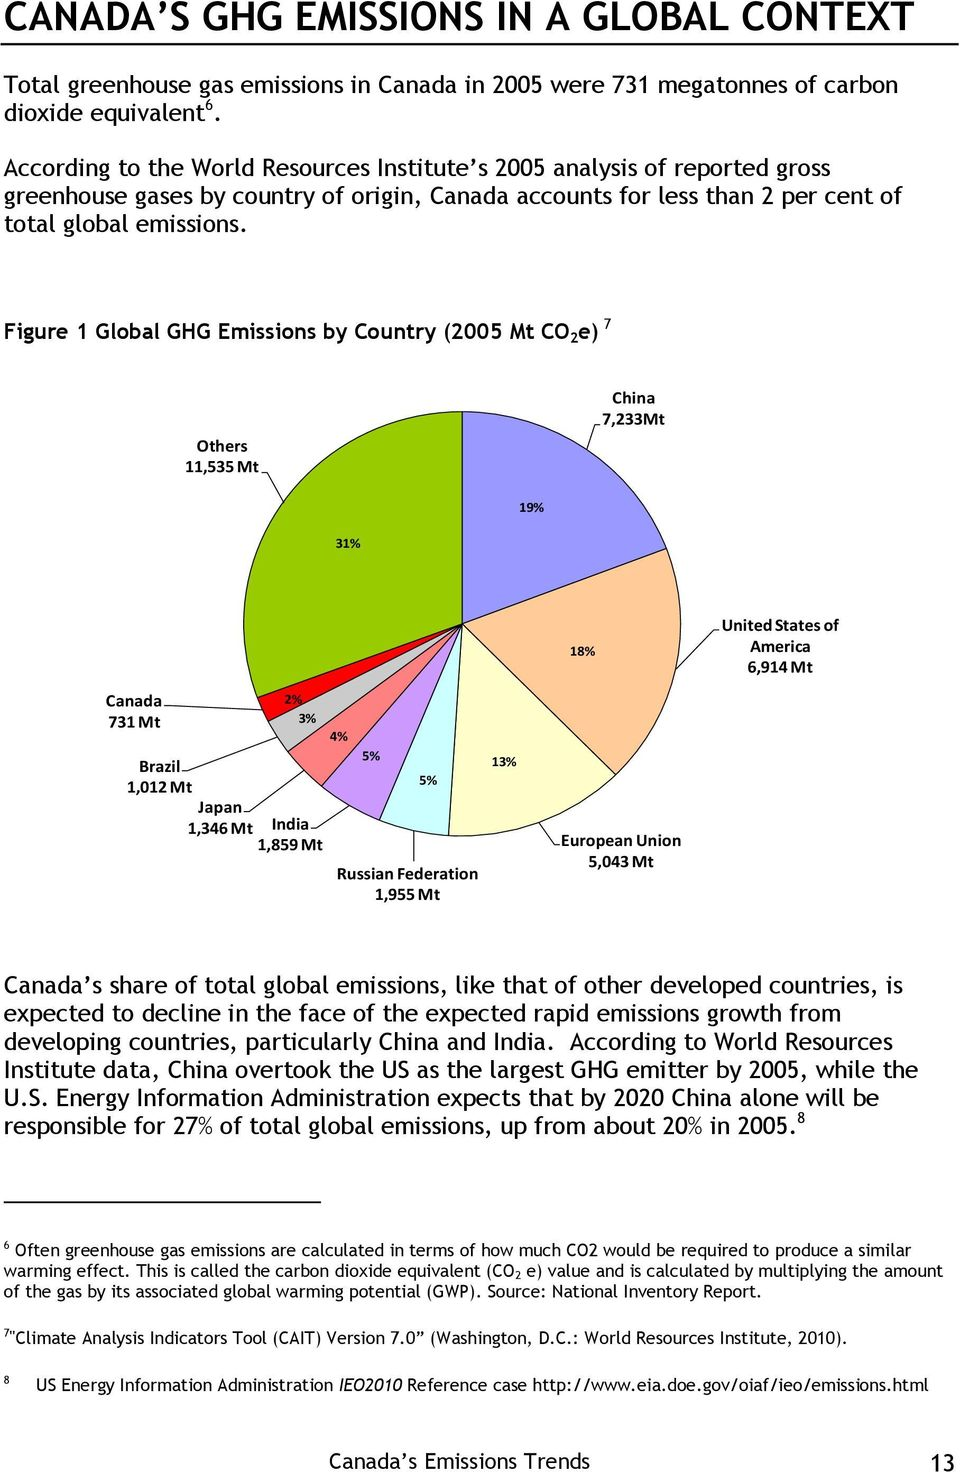 Figure 1 Global GHG Emissions by Country (2005 Mt CO 2 e) 7 Others 11,535 Mt China 7,233Mt 19% 31% 18% United States of America 6,914 Mt Canada 731 Mt 2% 3% Brazil 1,012 Mt Japan 1,346 Mt India 1,859